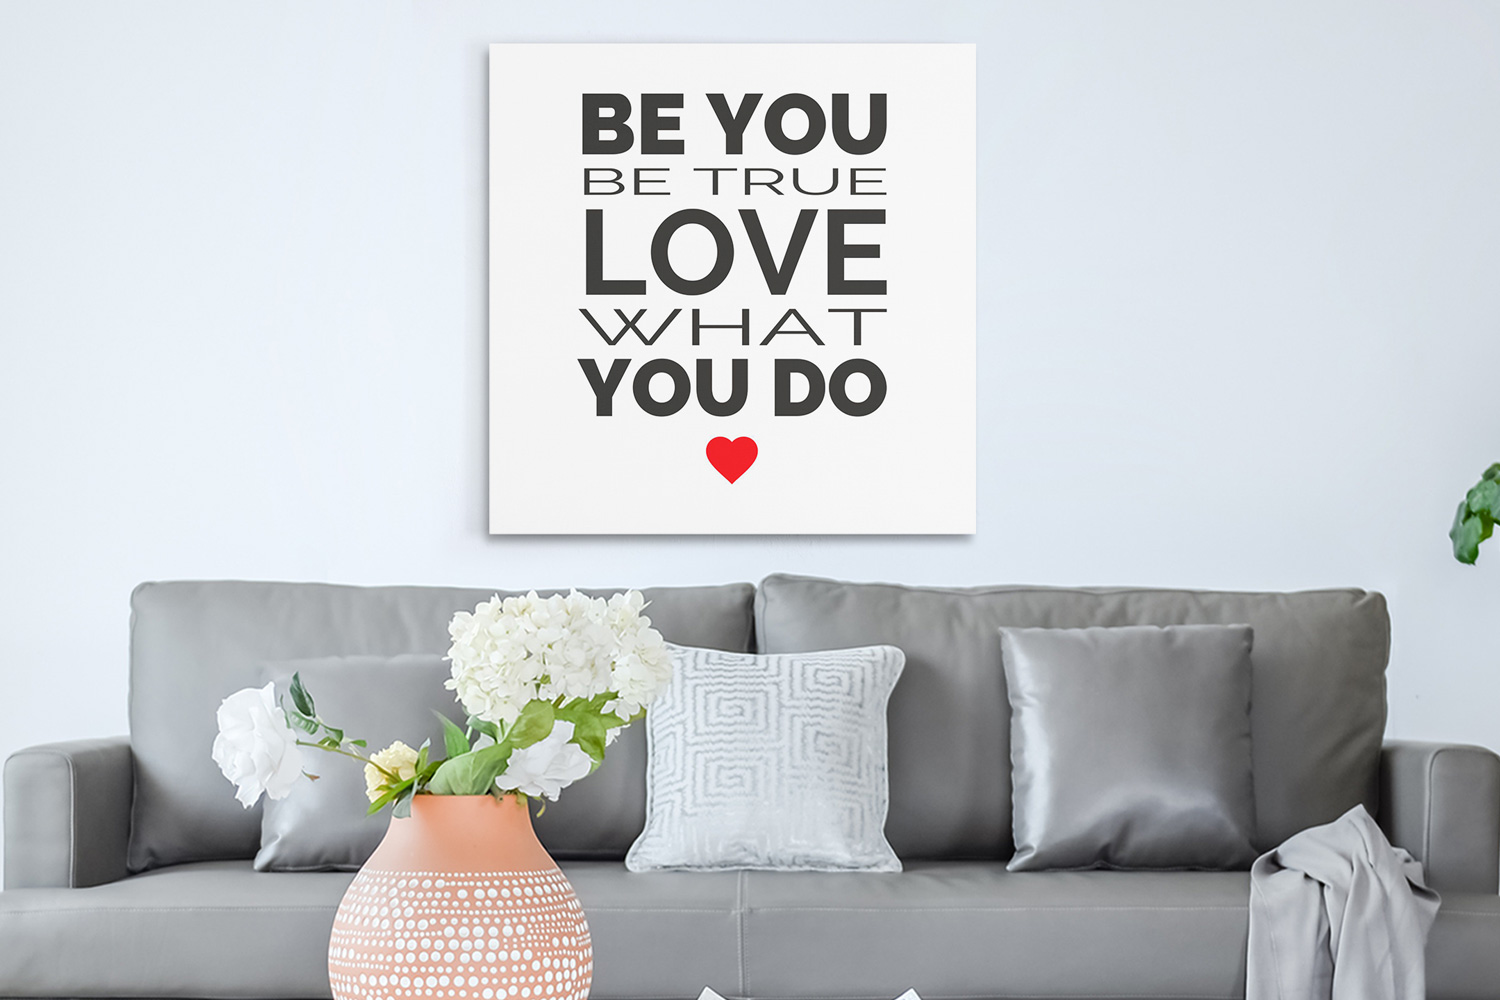 Be you be true love what you do